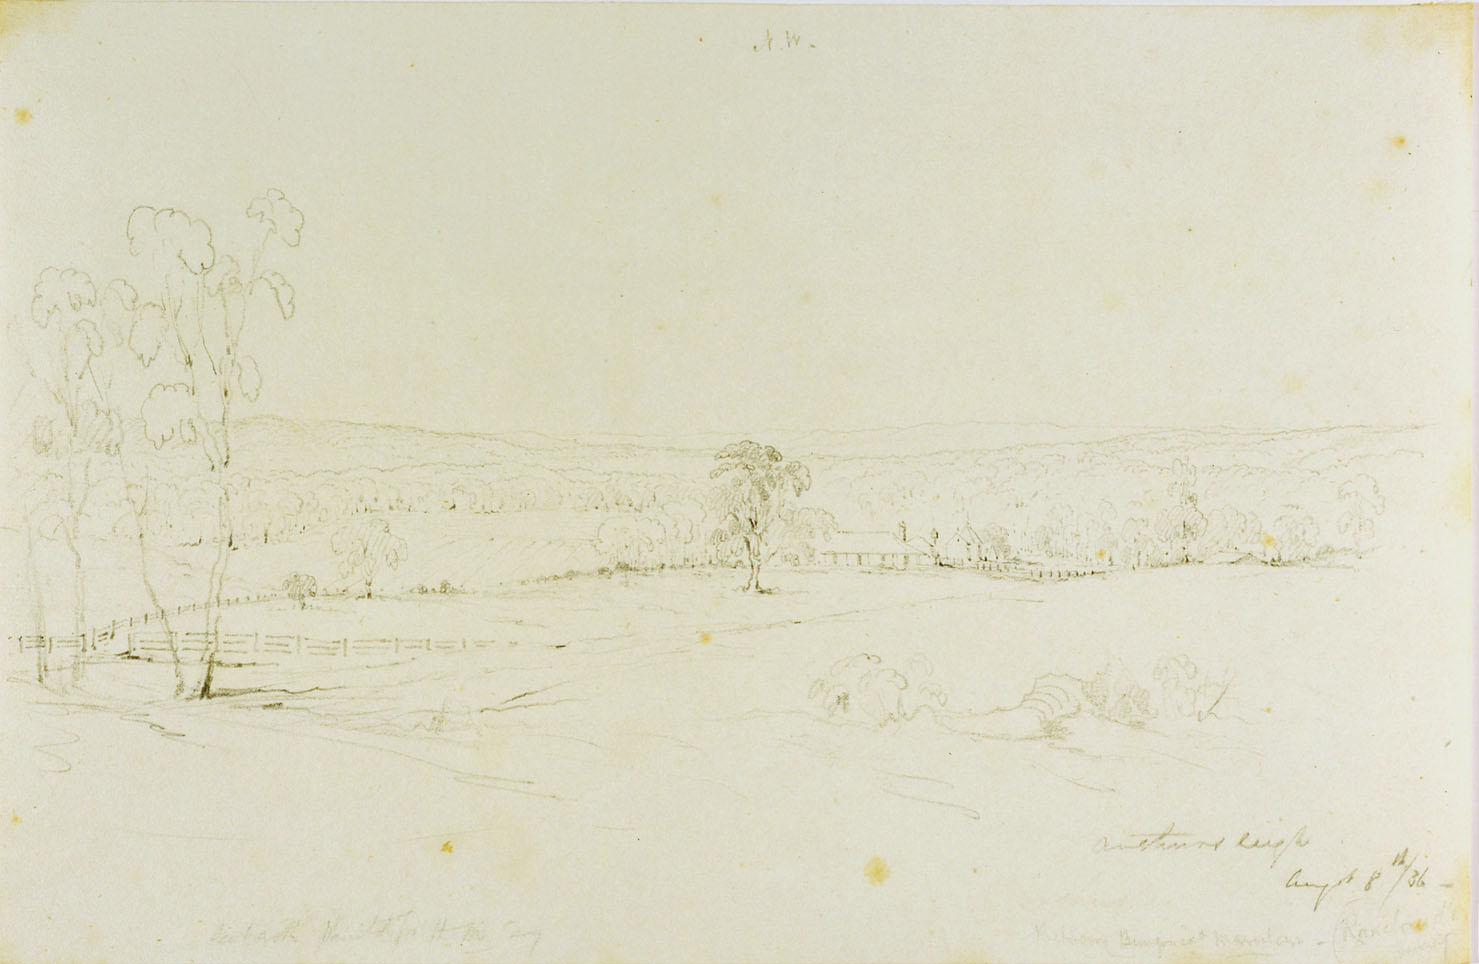 Arthursleigh/ August 8th 1836 / drawn by Conrad Martens